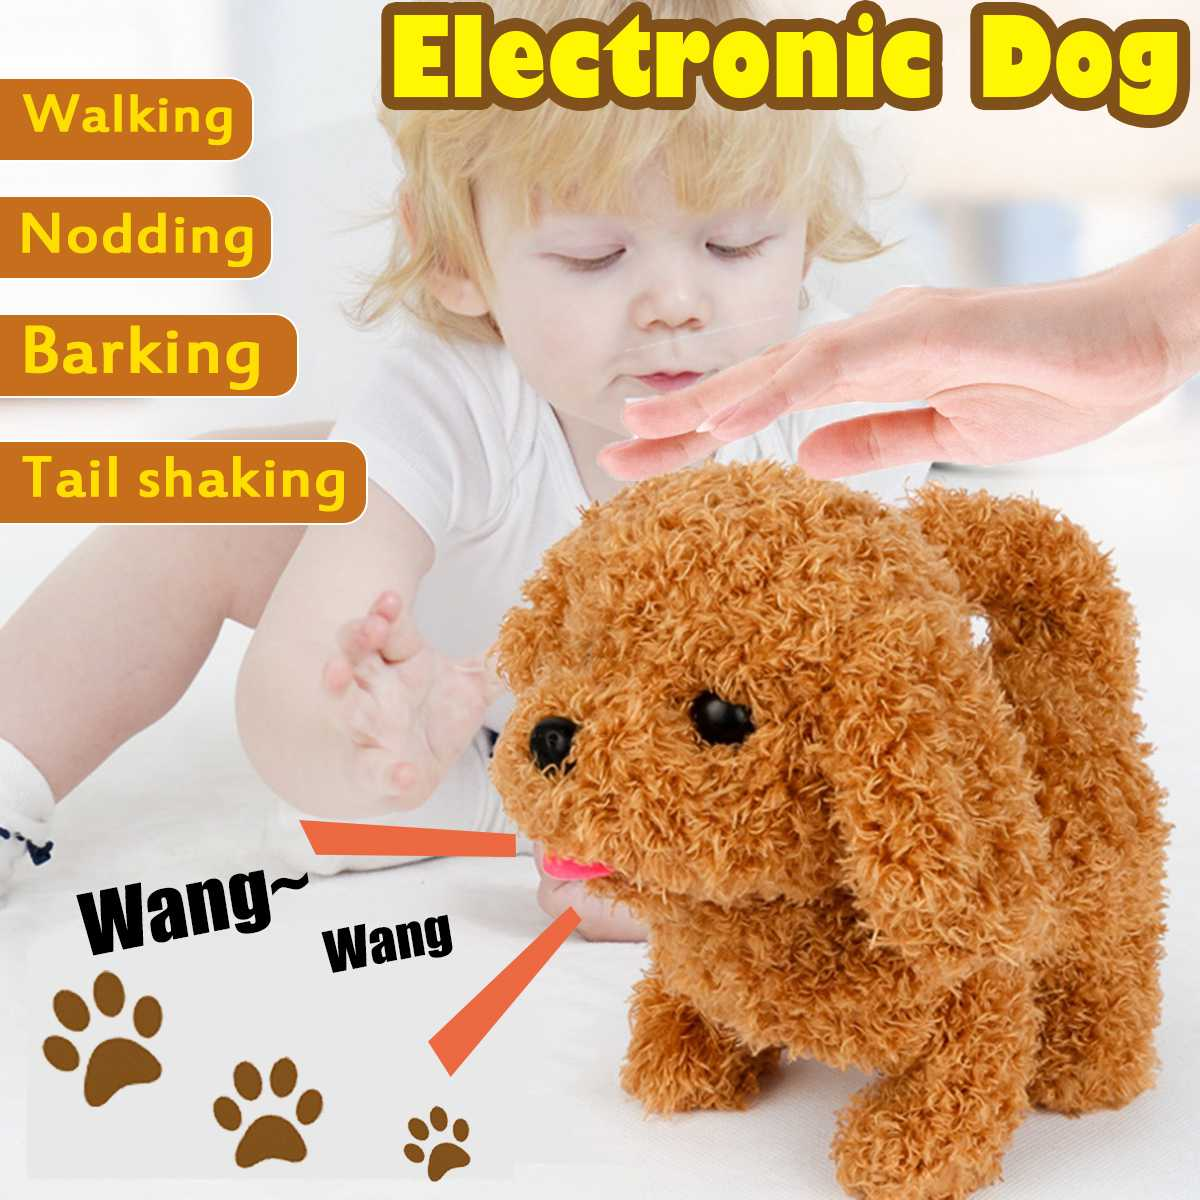 Electronic Robot Dog Paipai Control Kids Plush Toy Sound Control Interactive Bark Stand Walk Electronic Toys Dog For Baby Gifts